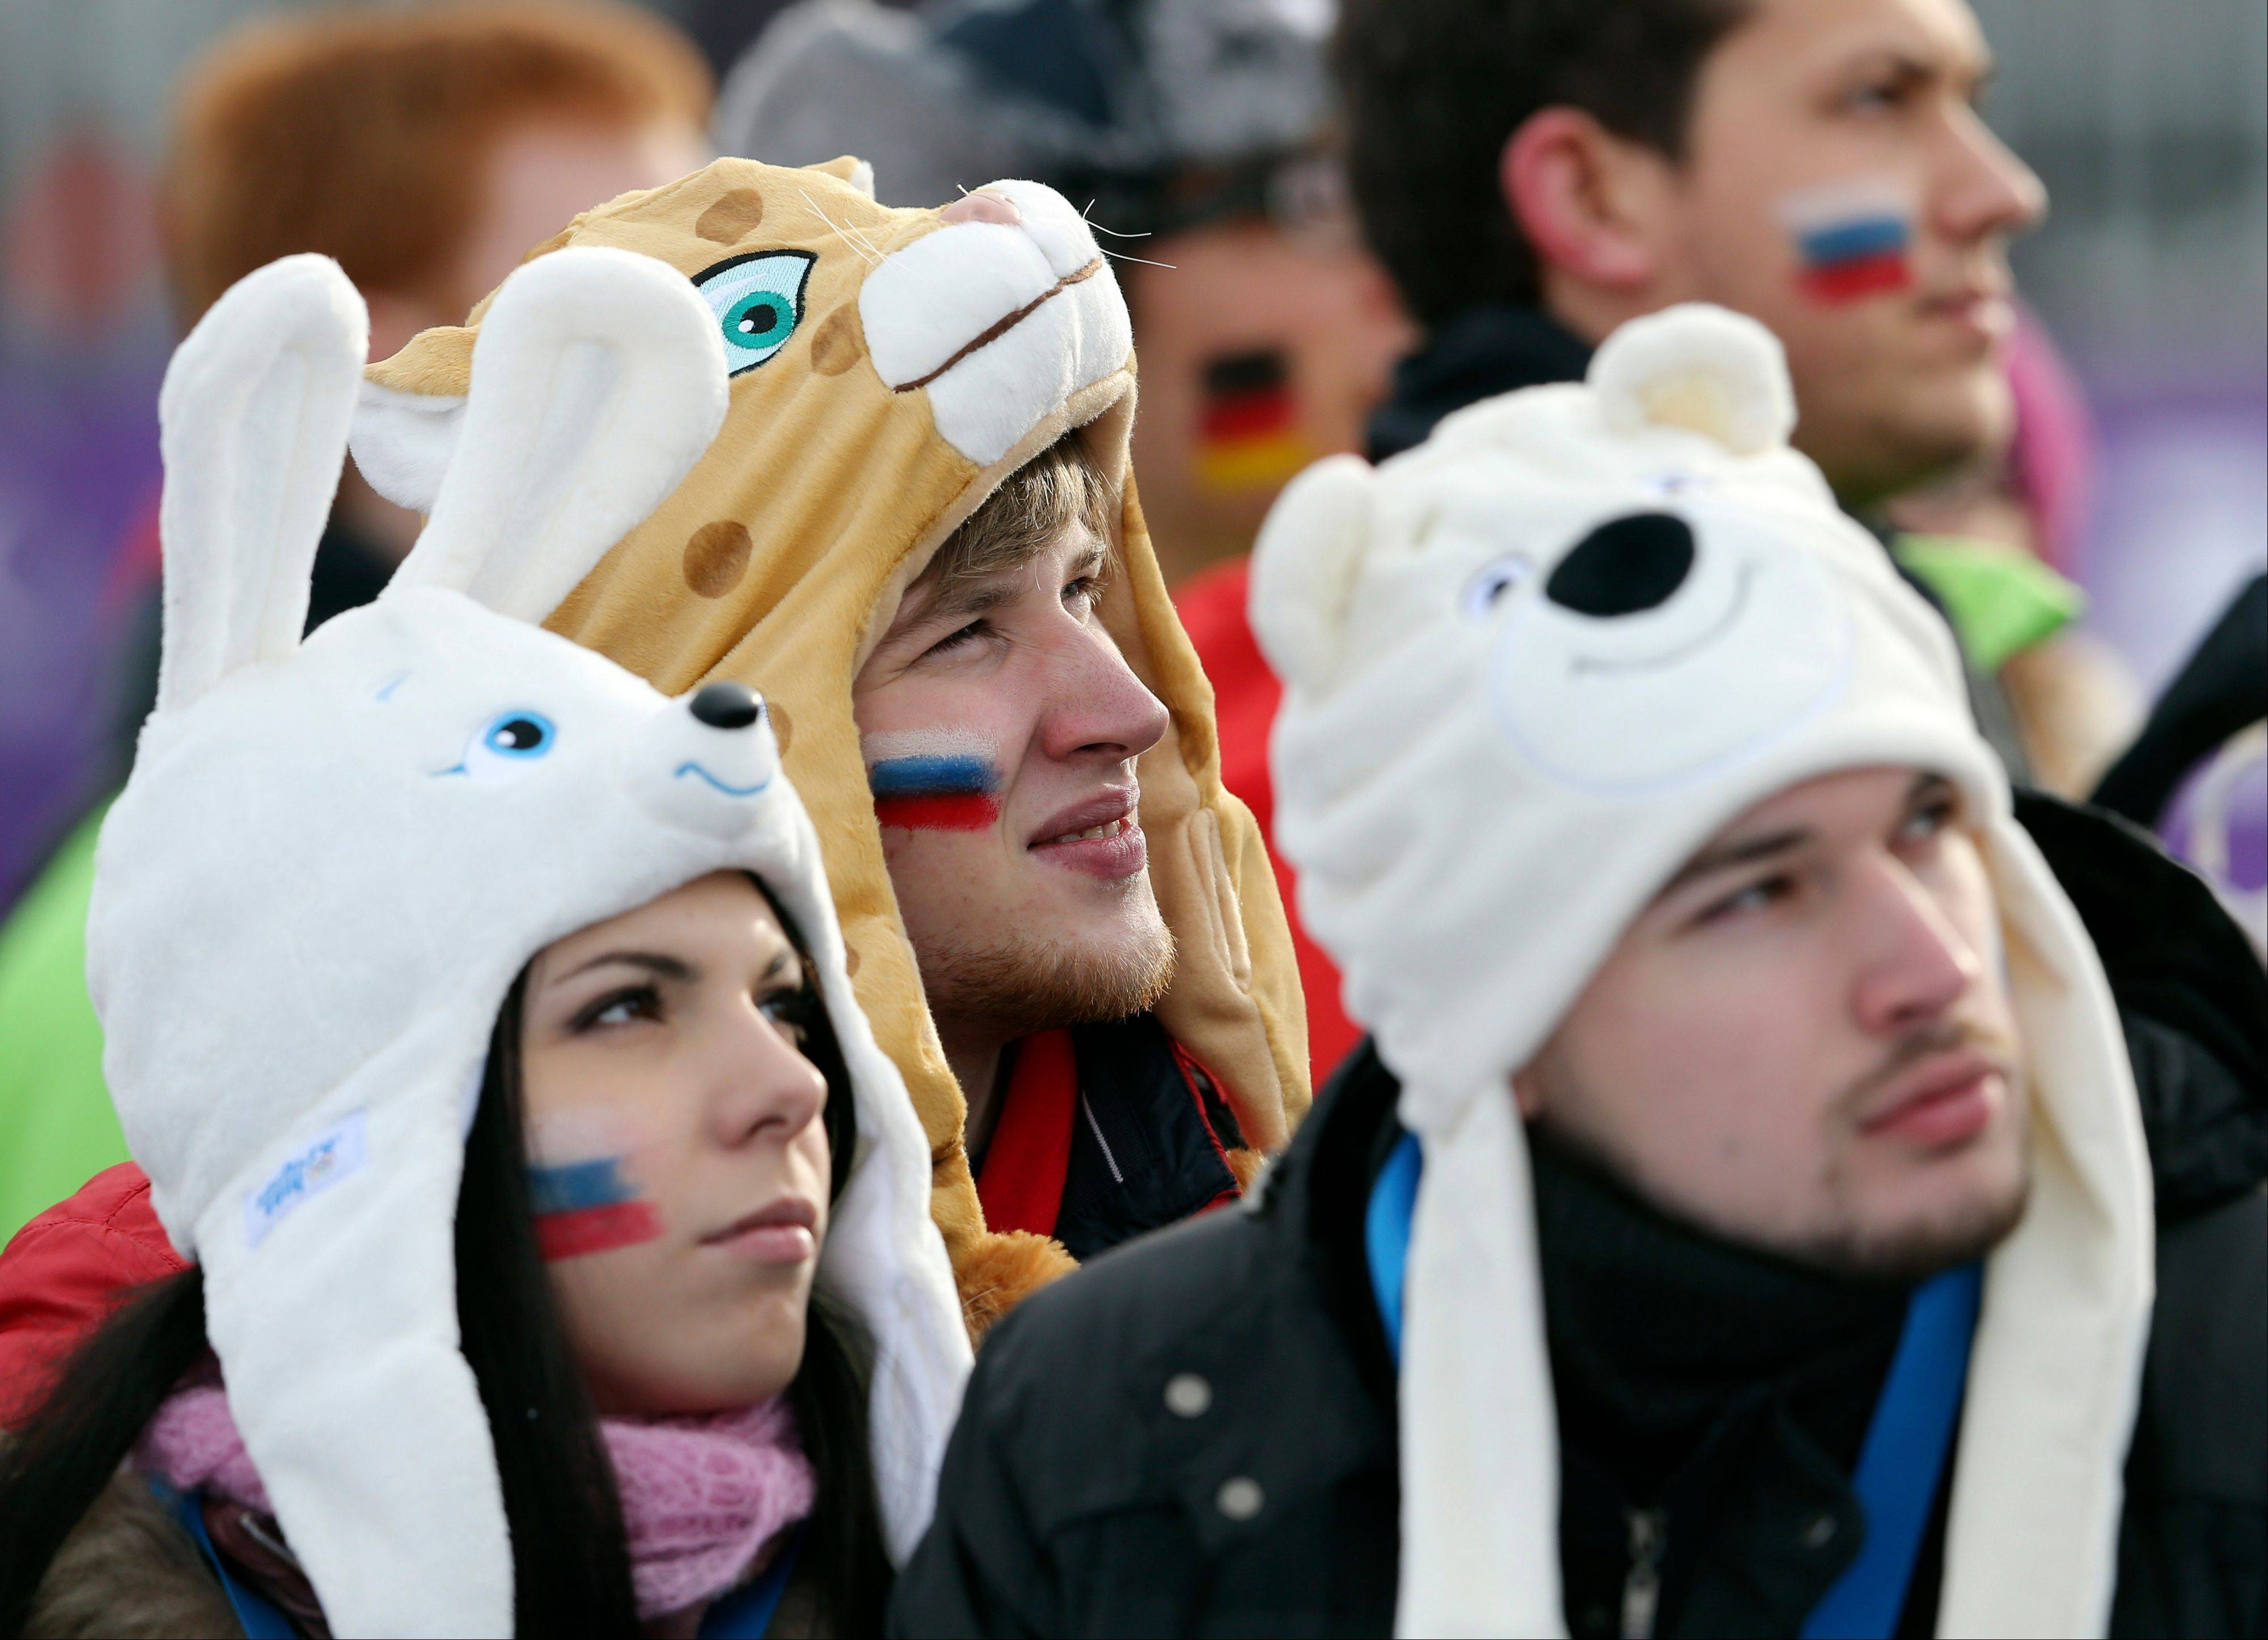 Russian fans wear animal-themed hats during the women's snowboard slopestyle semifinal at the 2014 Winter Olympics, Sunday, Feb. 9, 2014, in Krasnaya Polyana, Russia.